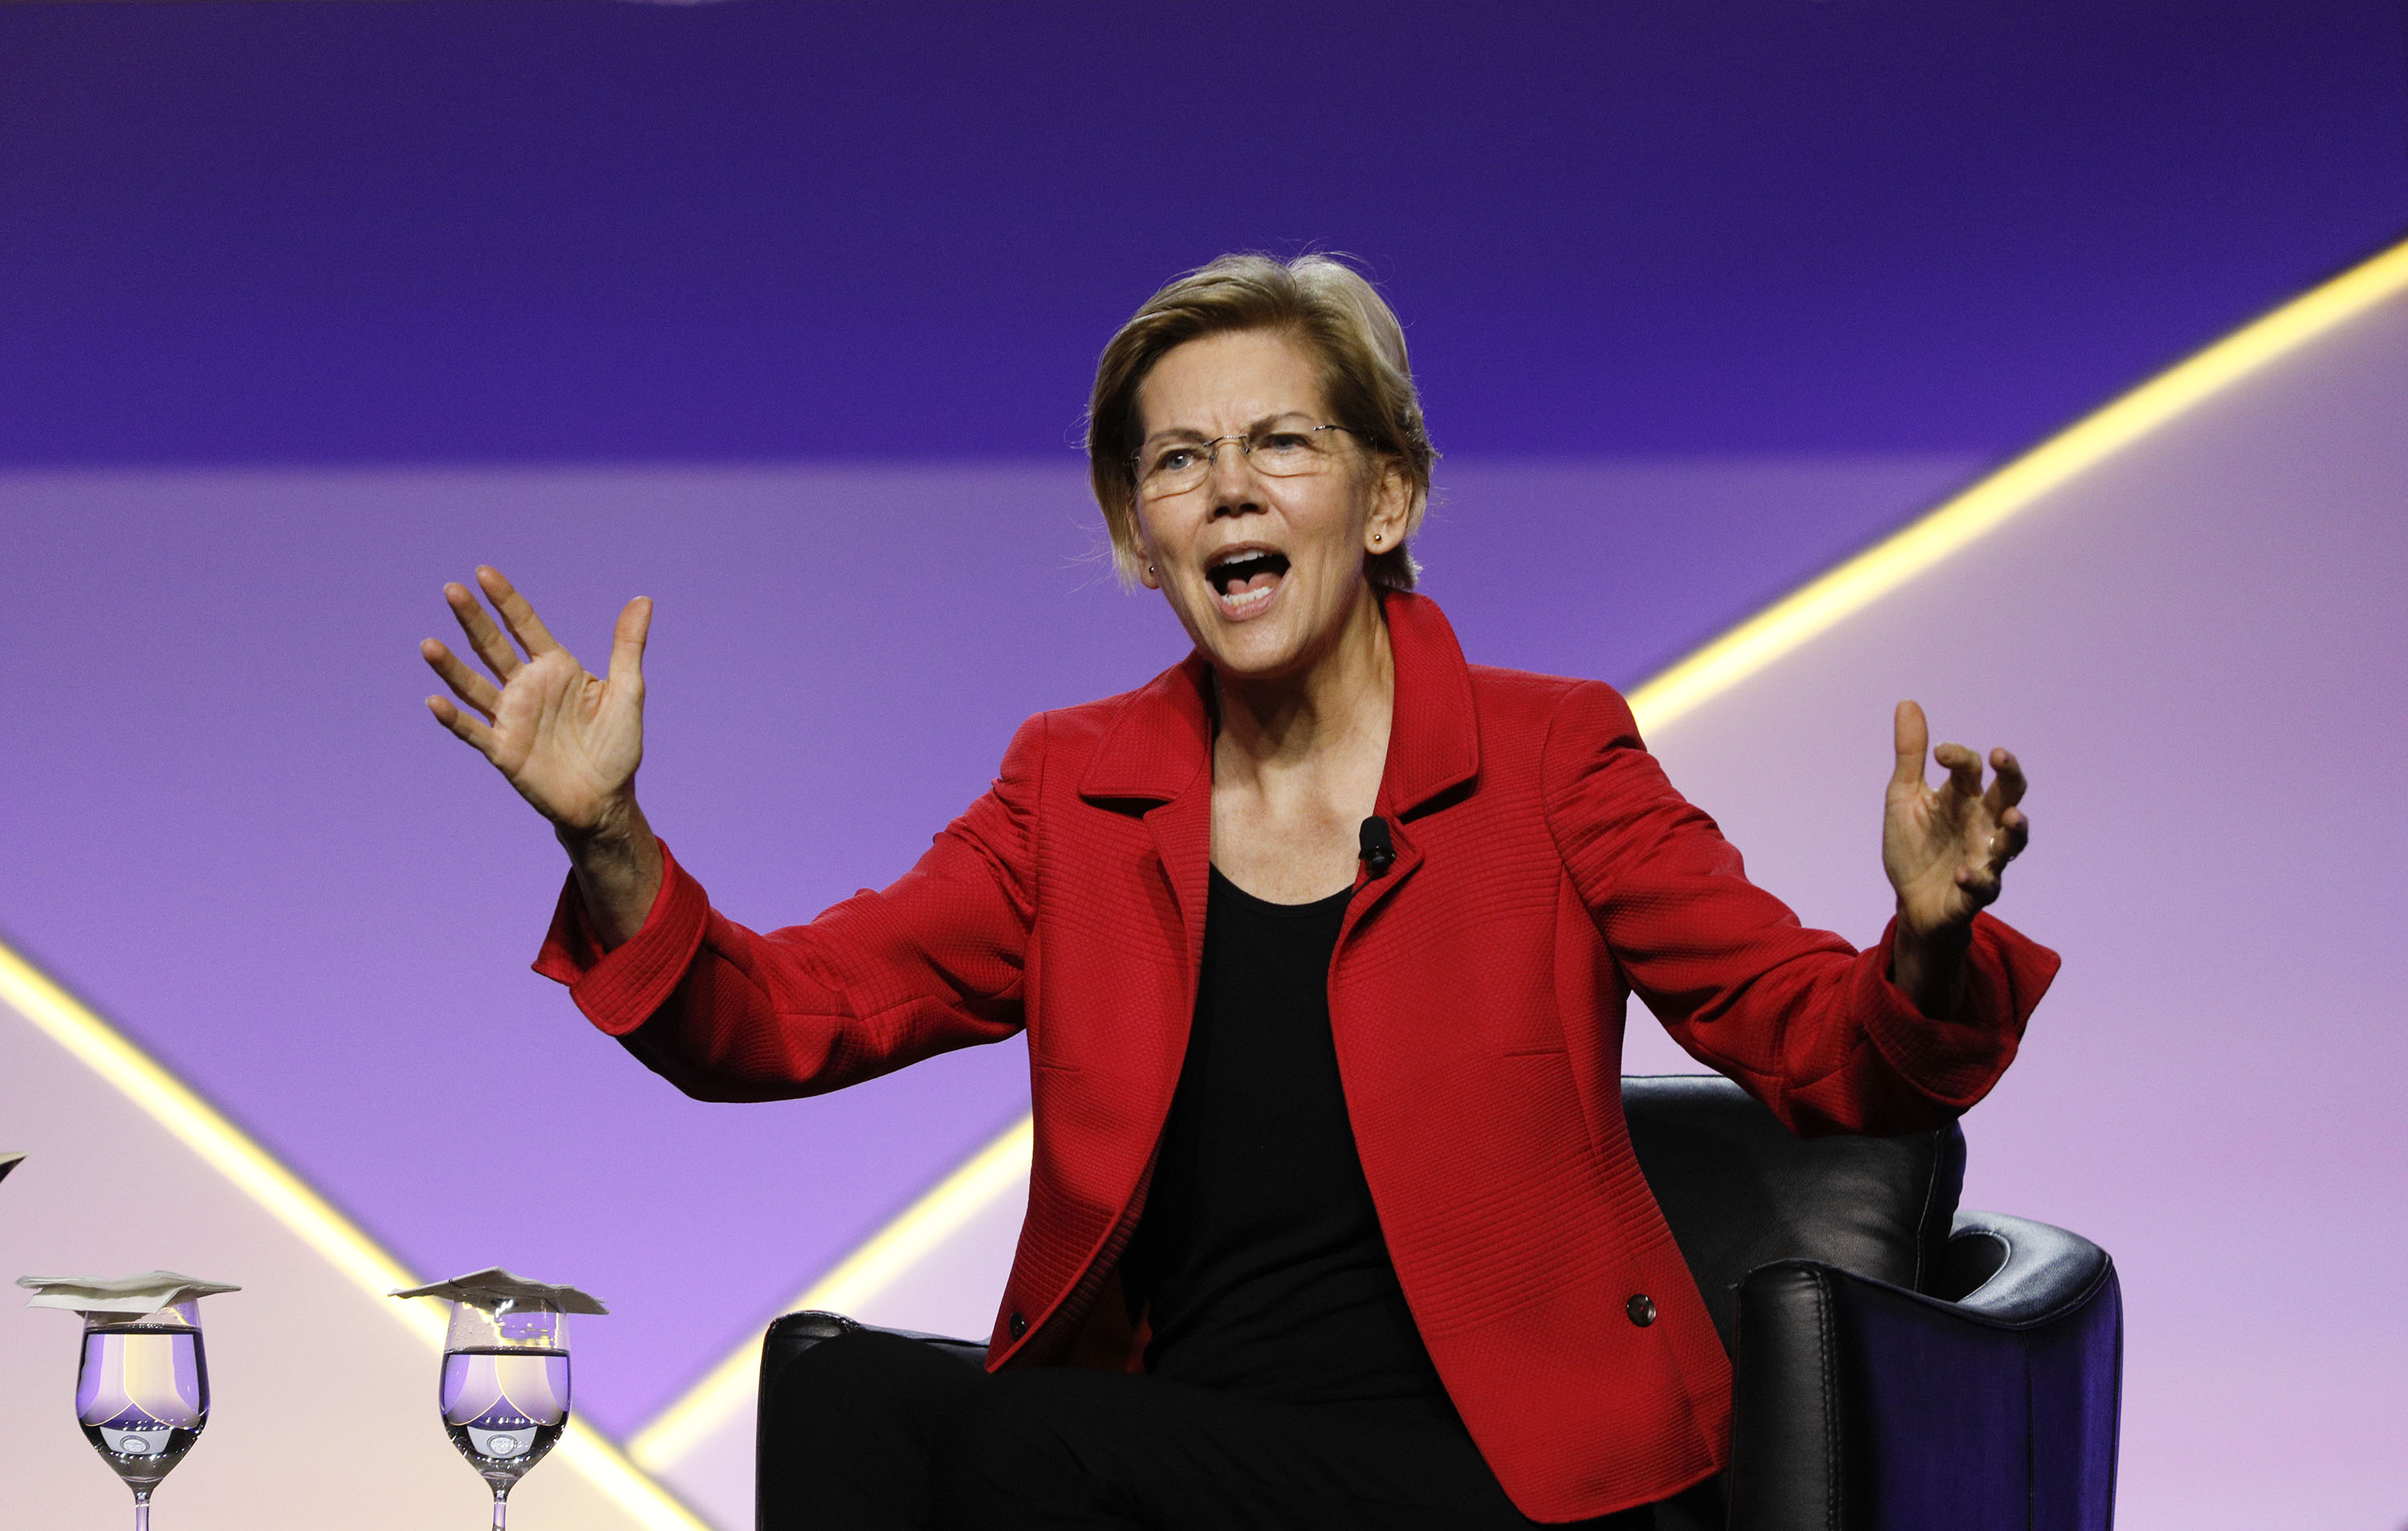 DETROIT, MI - JULY 24: Democratic presidential candidate U.S. Sen. Elizabeth Warren (D-MA) participates in a Presidential Candidates Forum at the NAACP 110th National Convention on July 24, 2019 in Detroit, Michigan. The theme of this years Convention is, When We Fight, We Win. (Photo by Bill Pugliano/Getty Images)